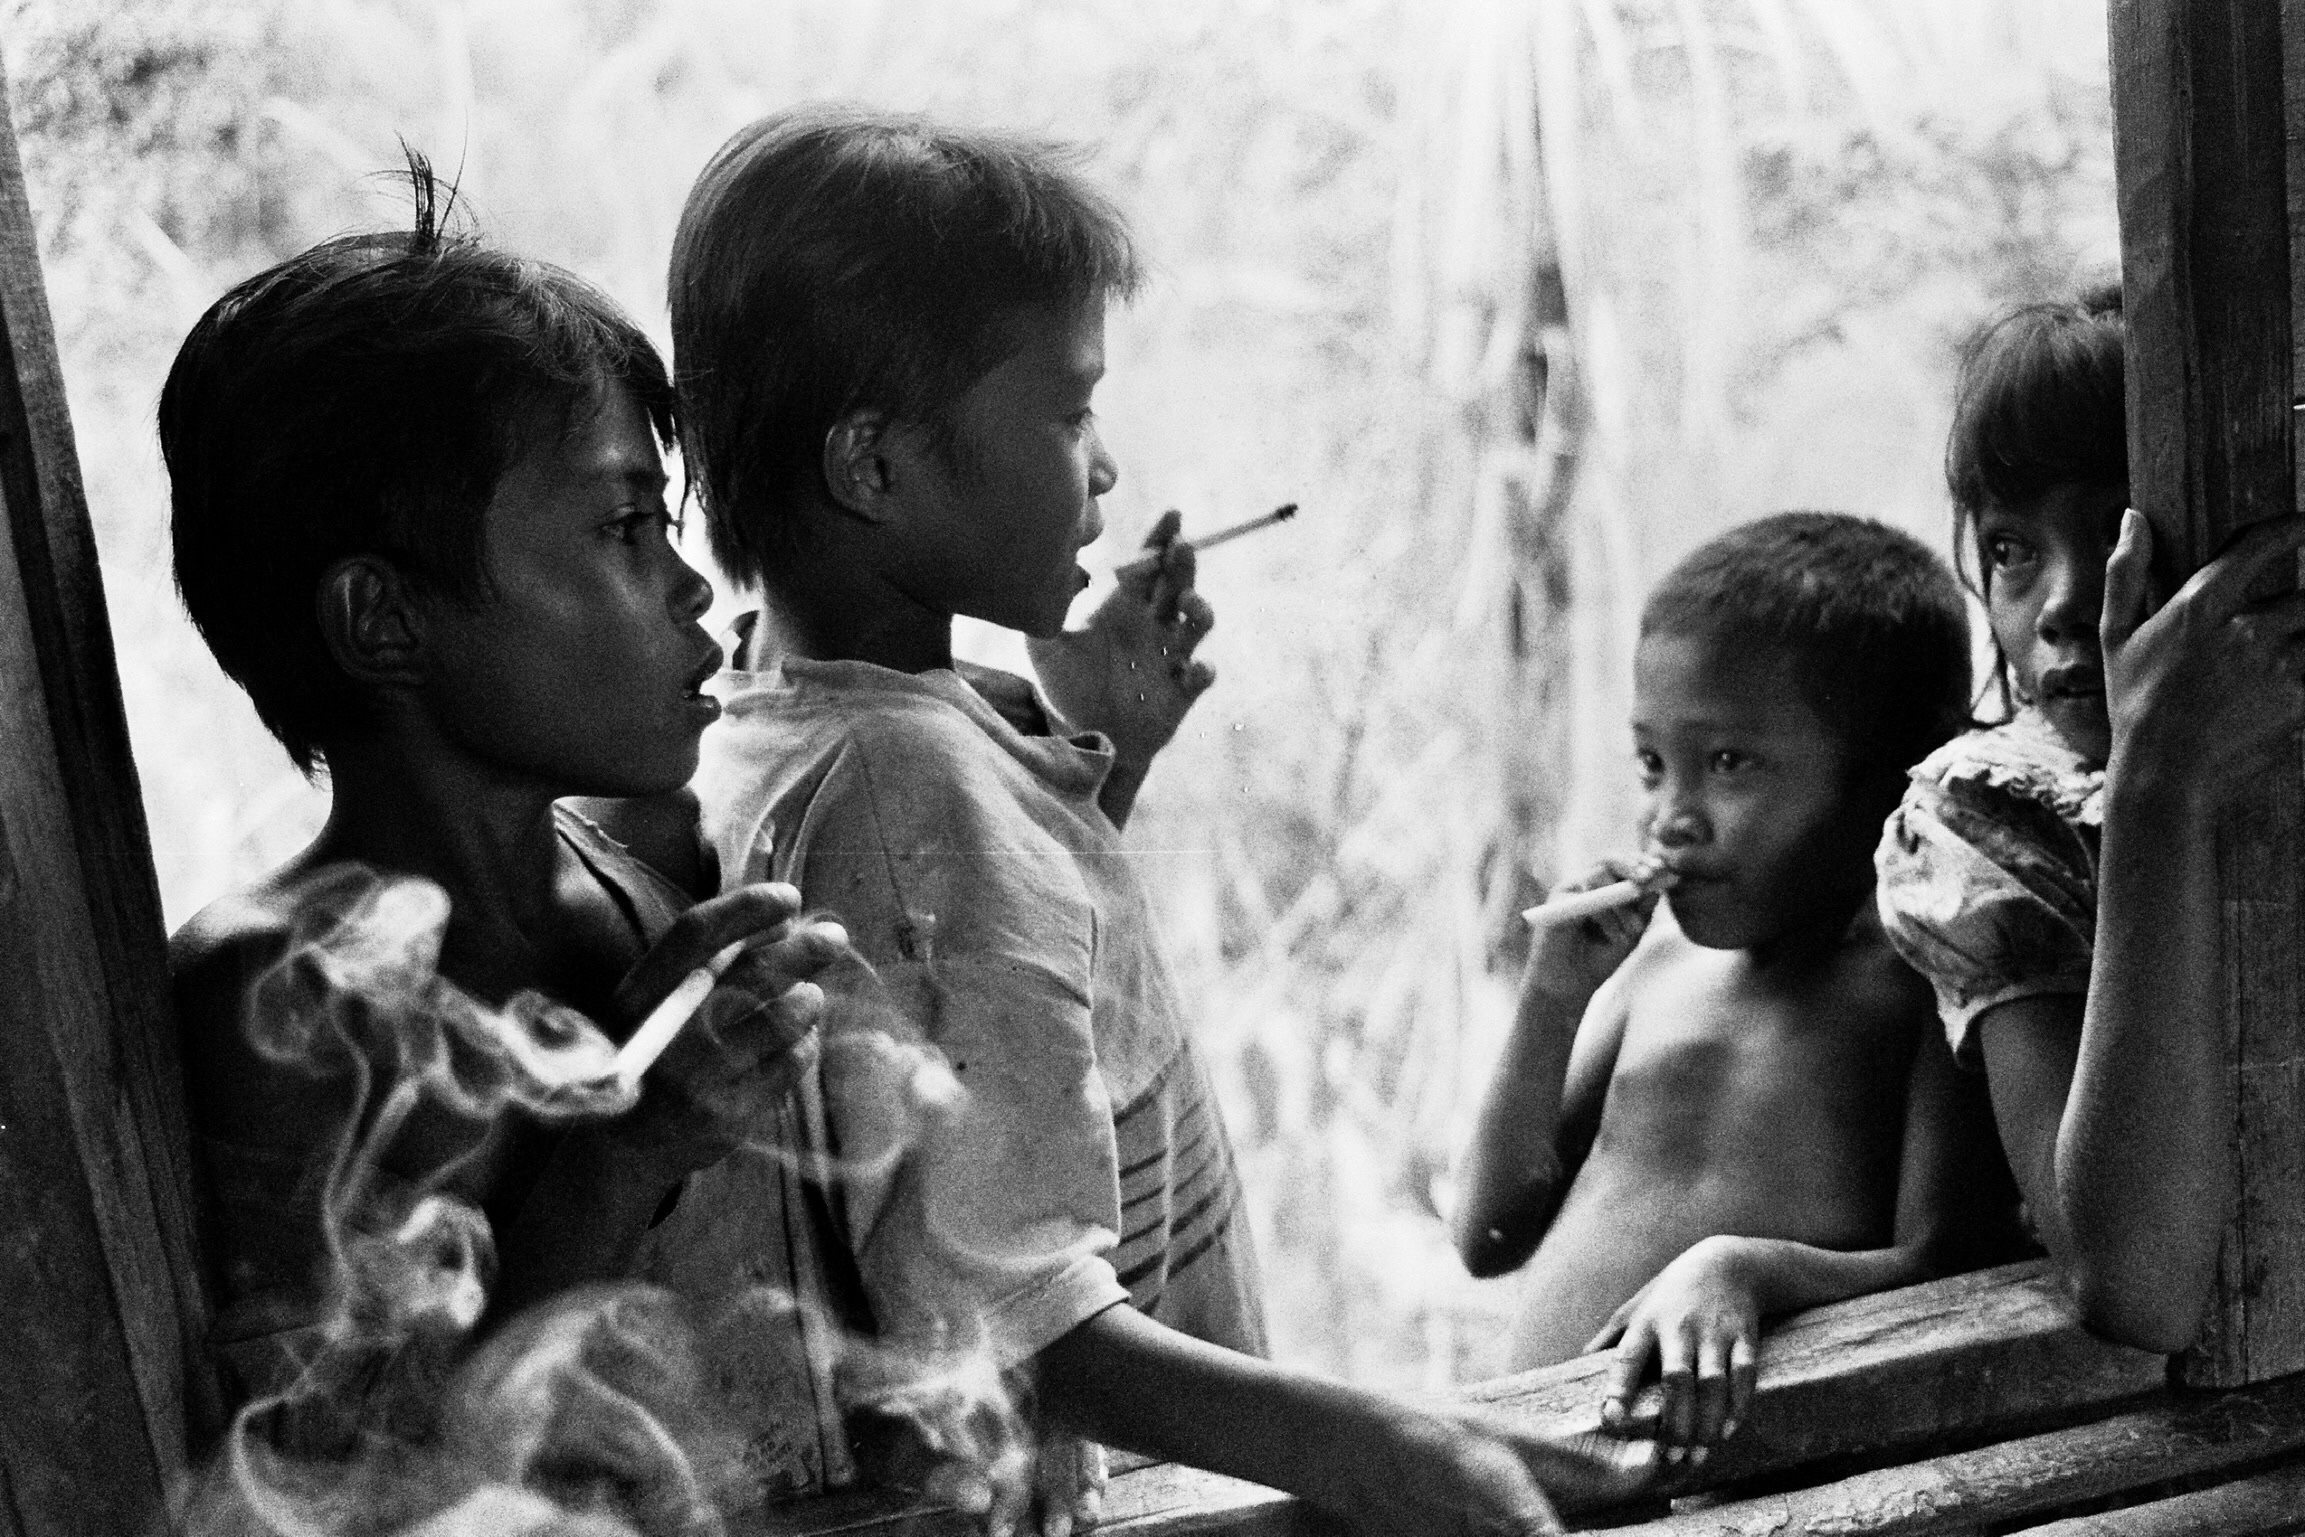 Cigarettes both clove and western had already been brought to the village and were valued by children and adults alike. The girl on the right wasn't part of the boy gang.